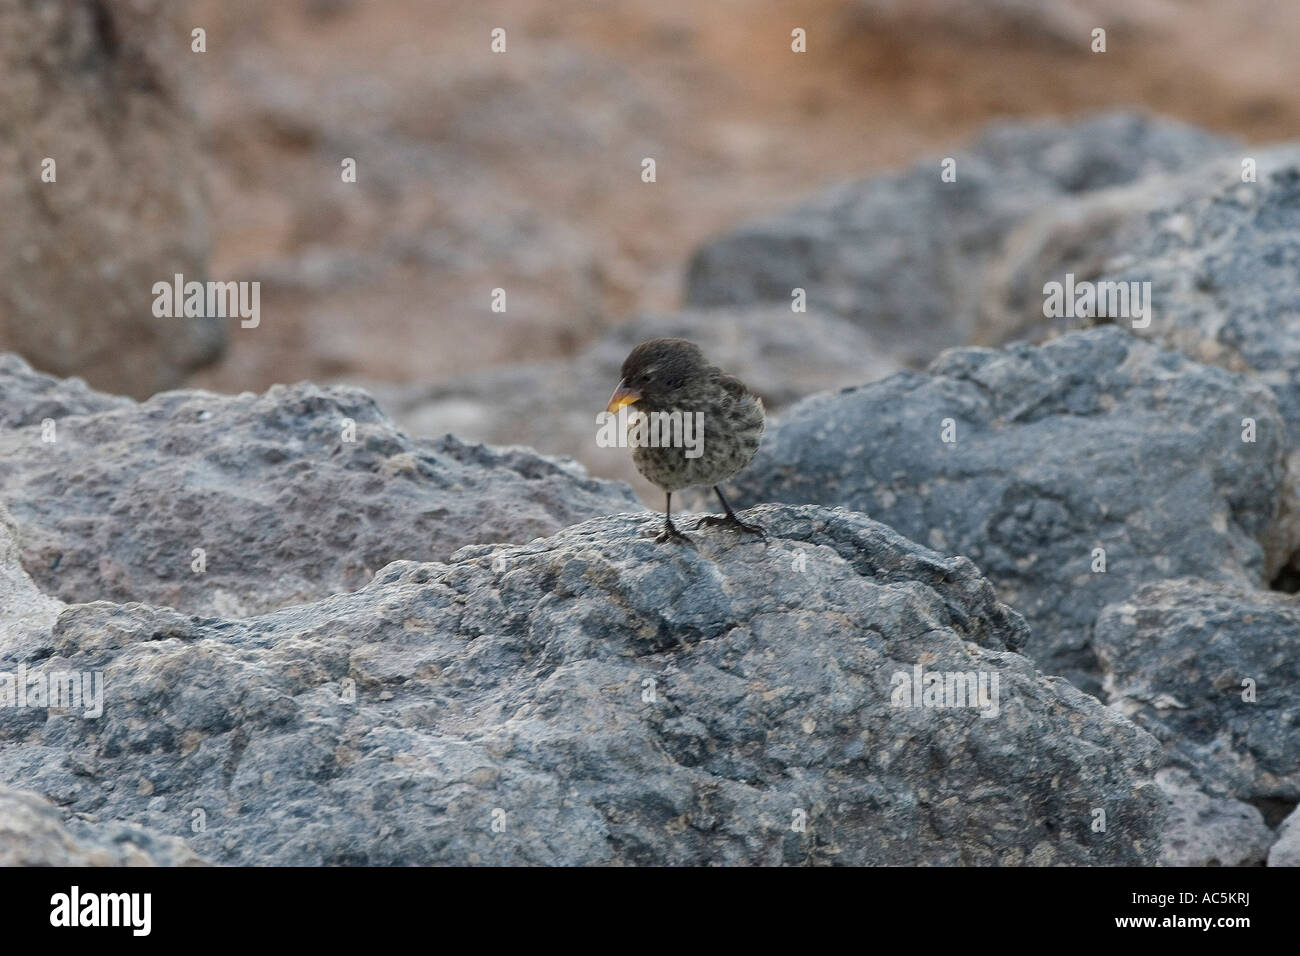 Cactus ground finch Taken on South Plazas in the Galapagos islands - Stock Image